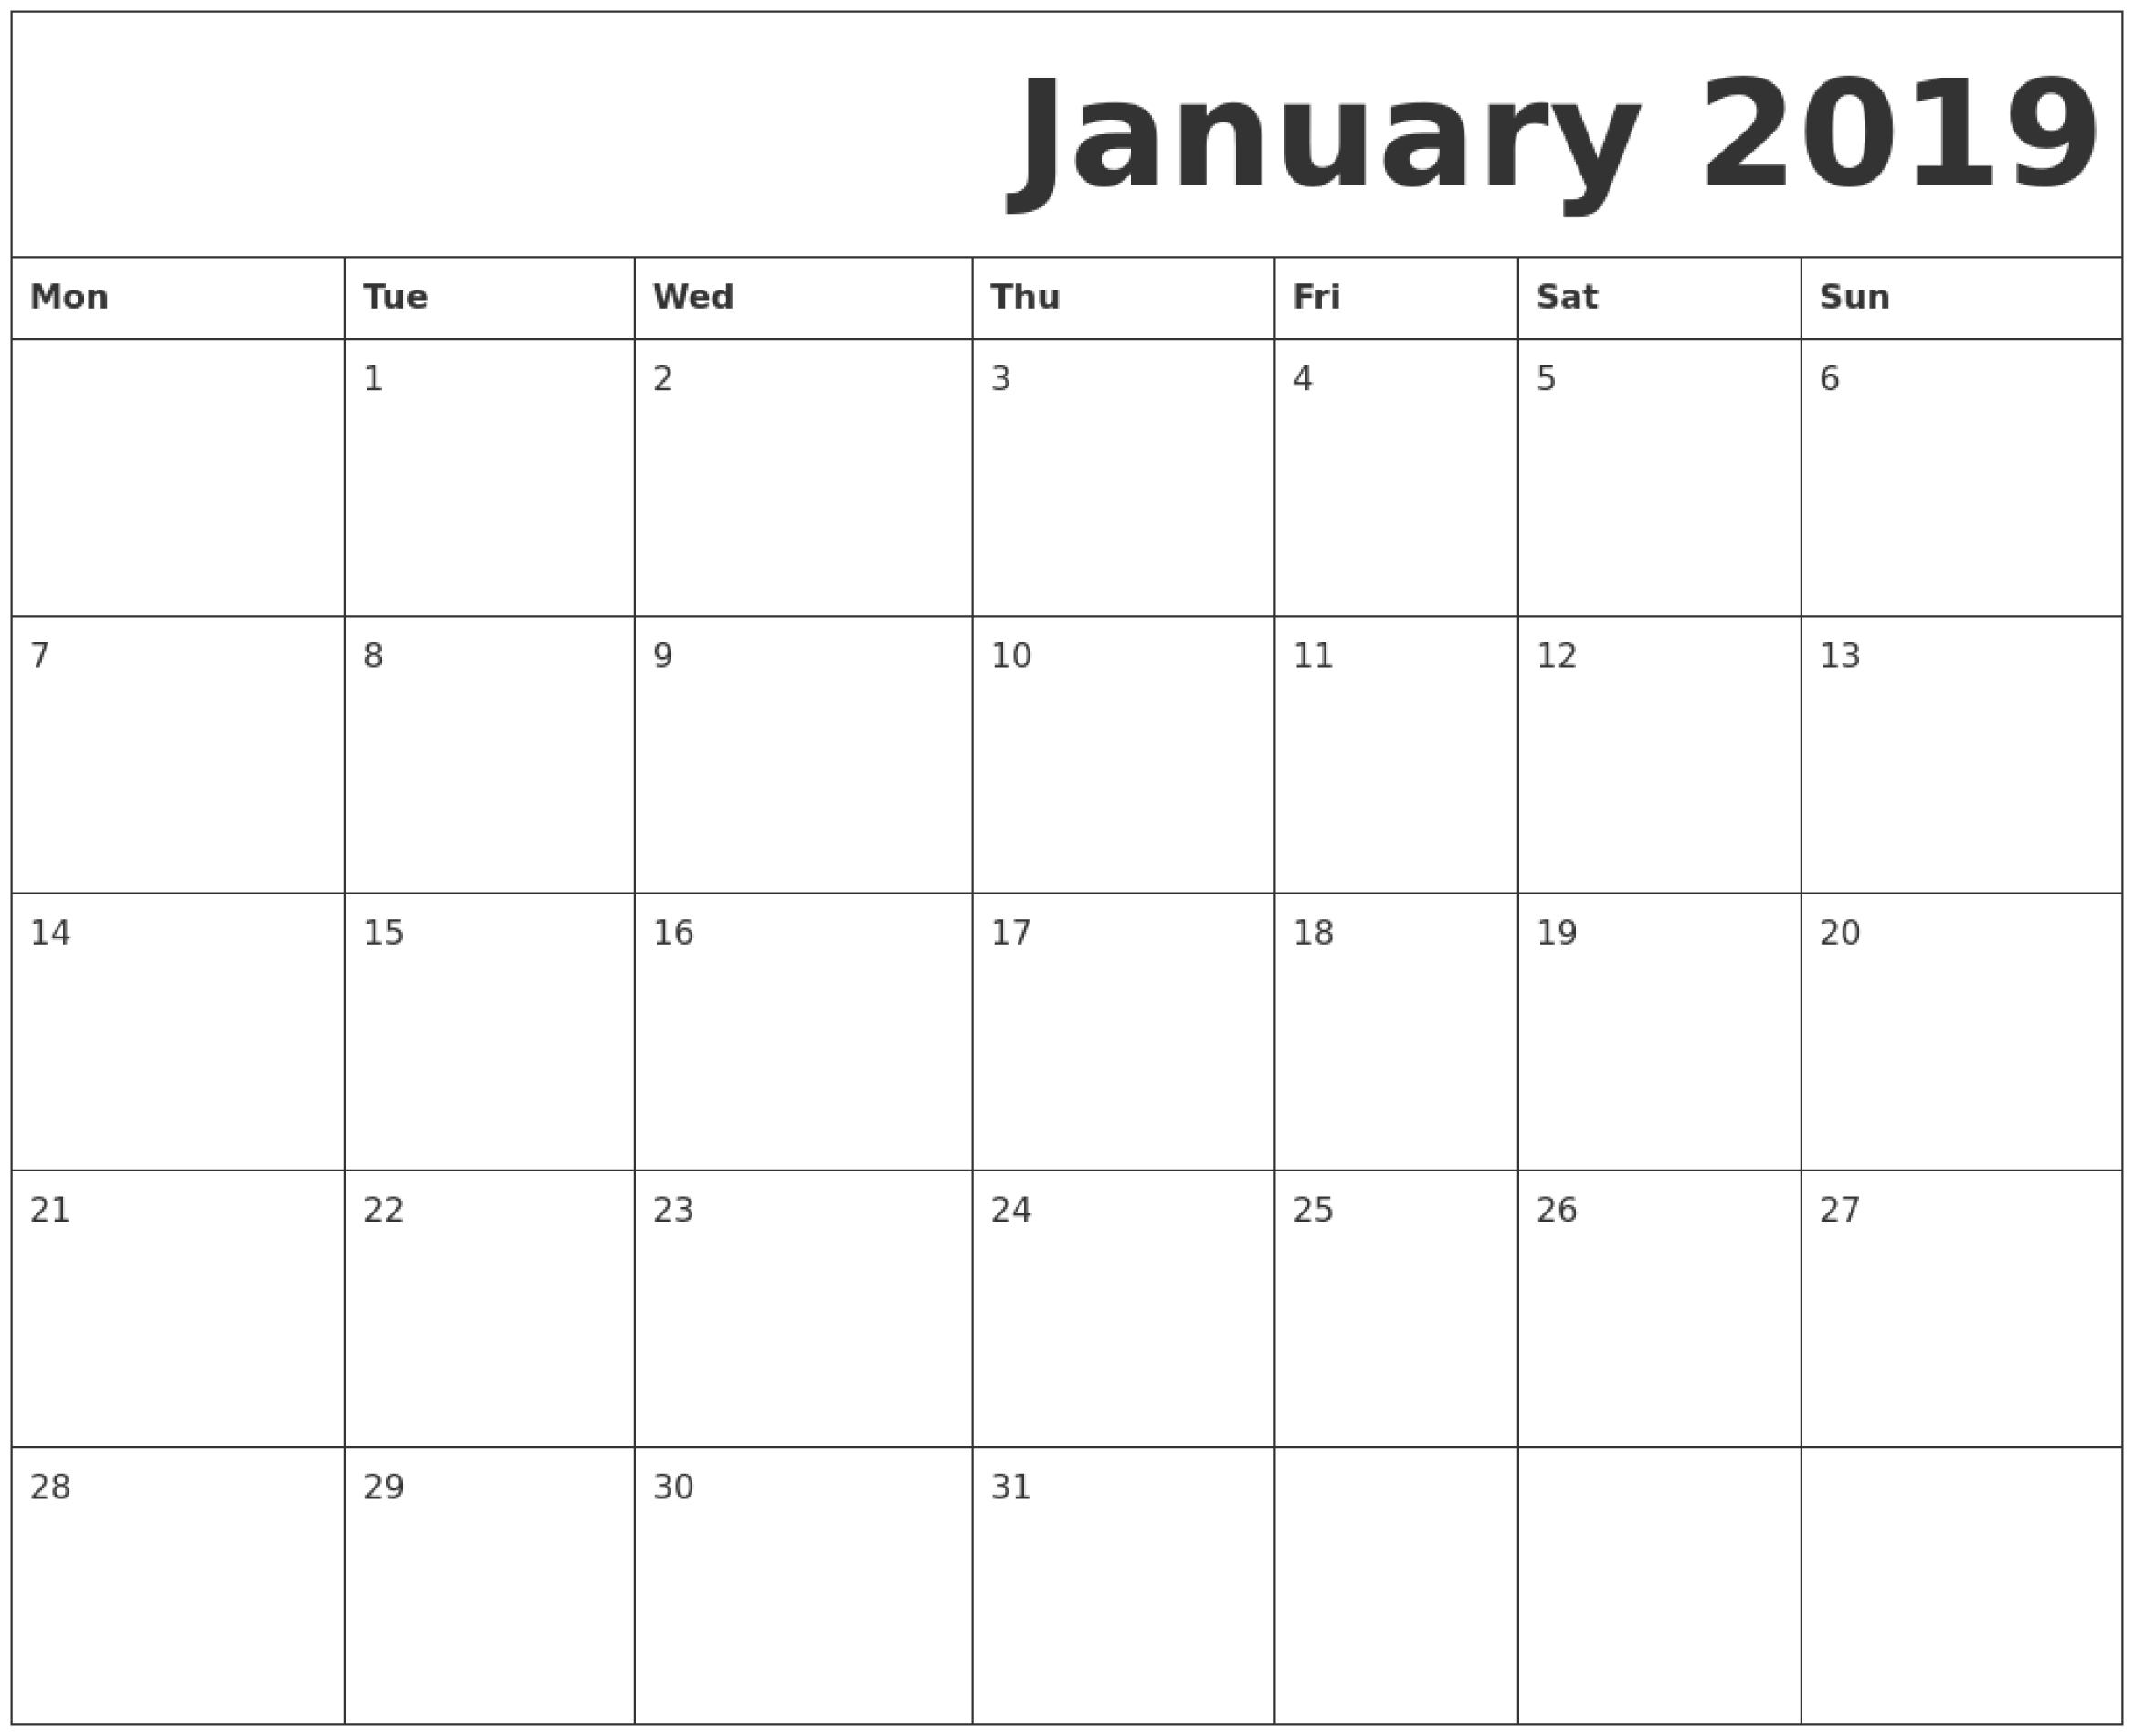 January 2019 Printable Calendar Monday Start. | January 2019 regarding Blank Monthly Calendar Monday Start